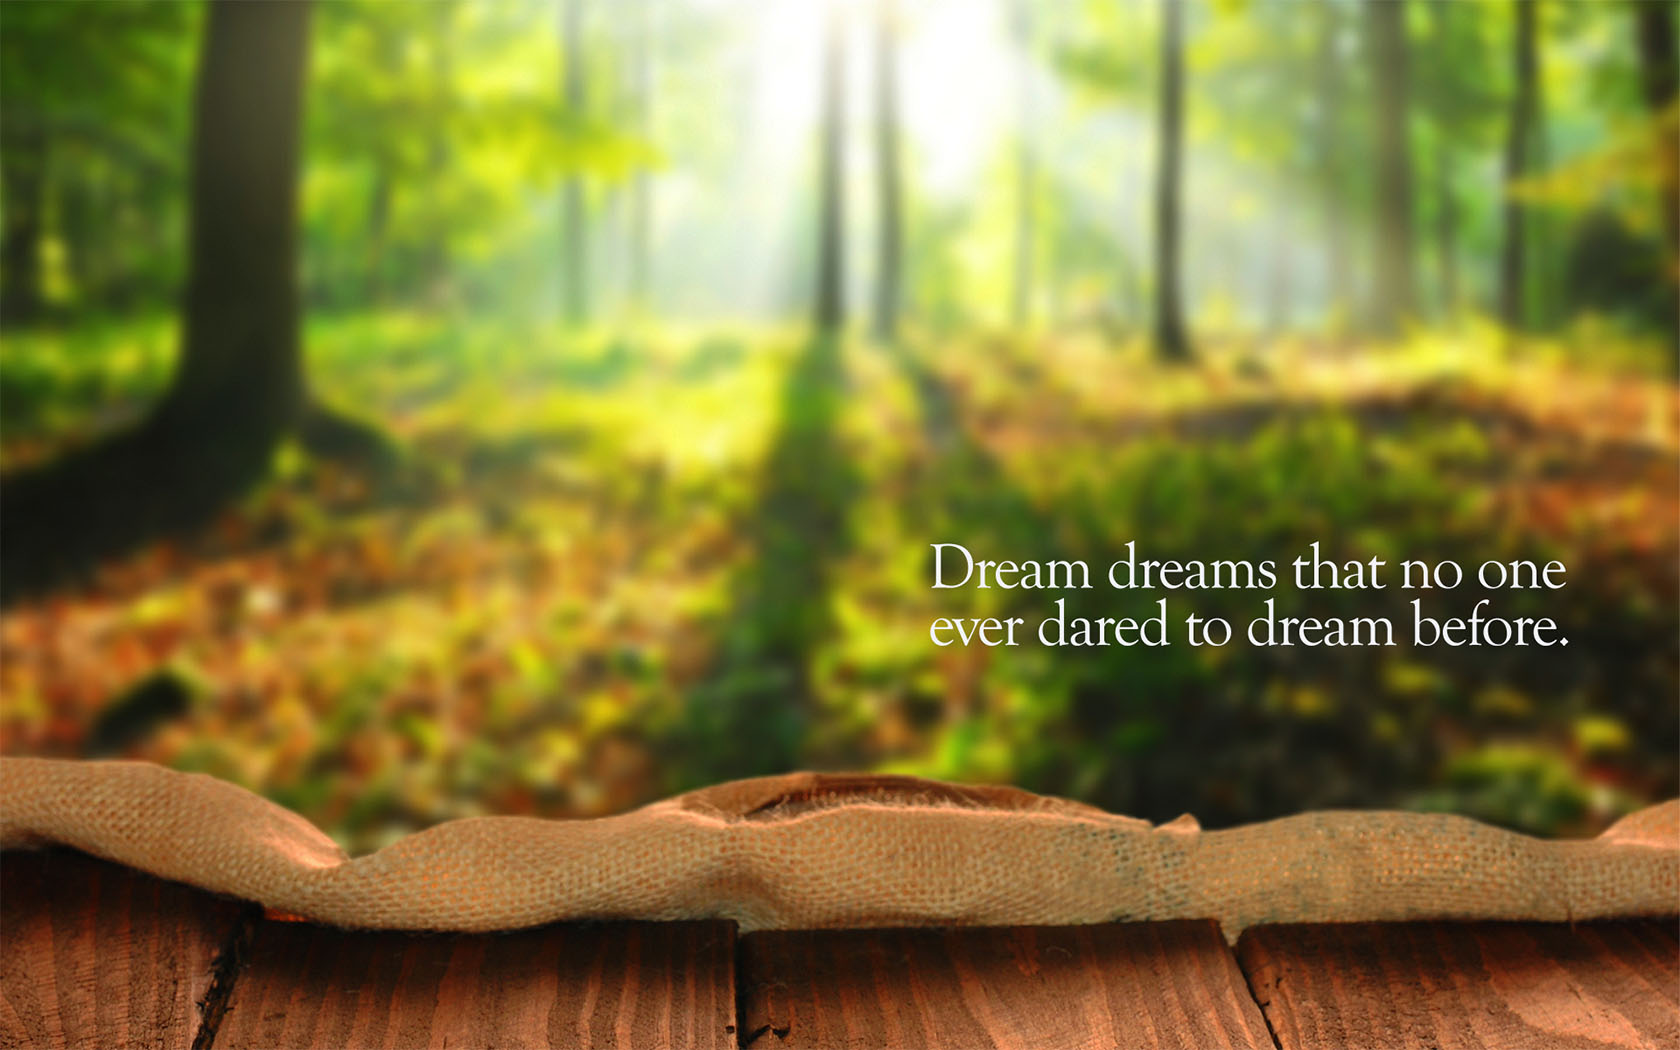 Life Hd Wallpapers With Quotes Dream Dreams Inspirational Quotes Quotivee